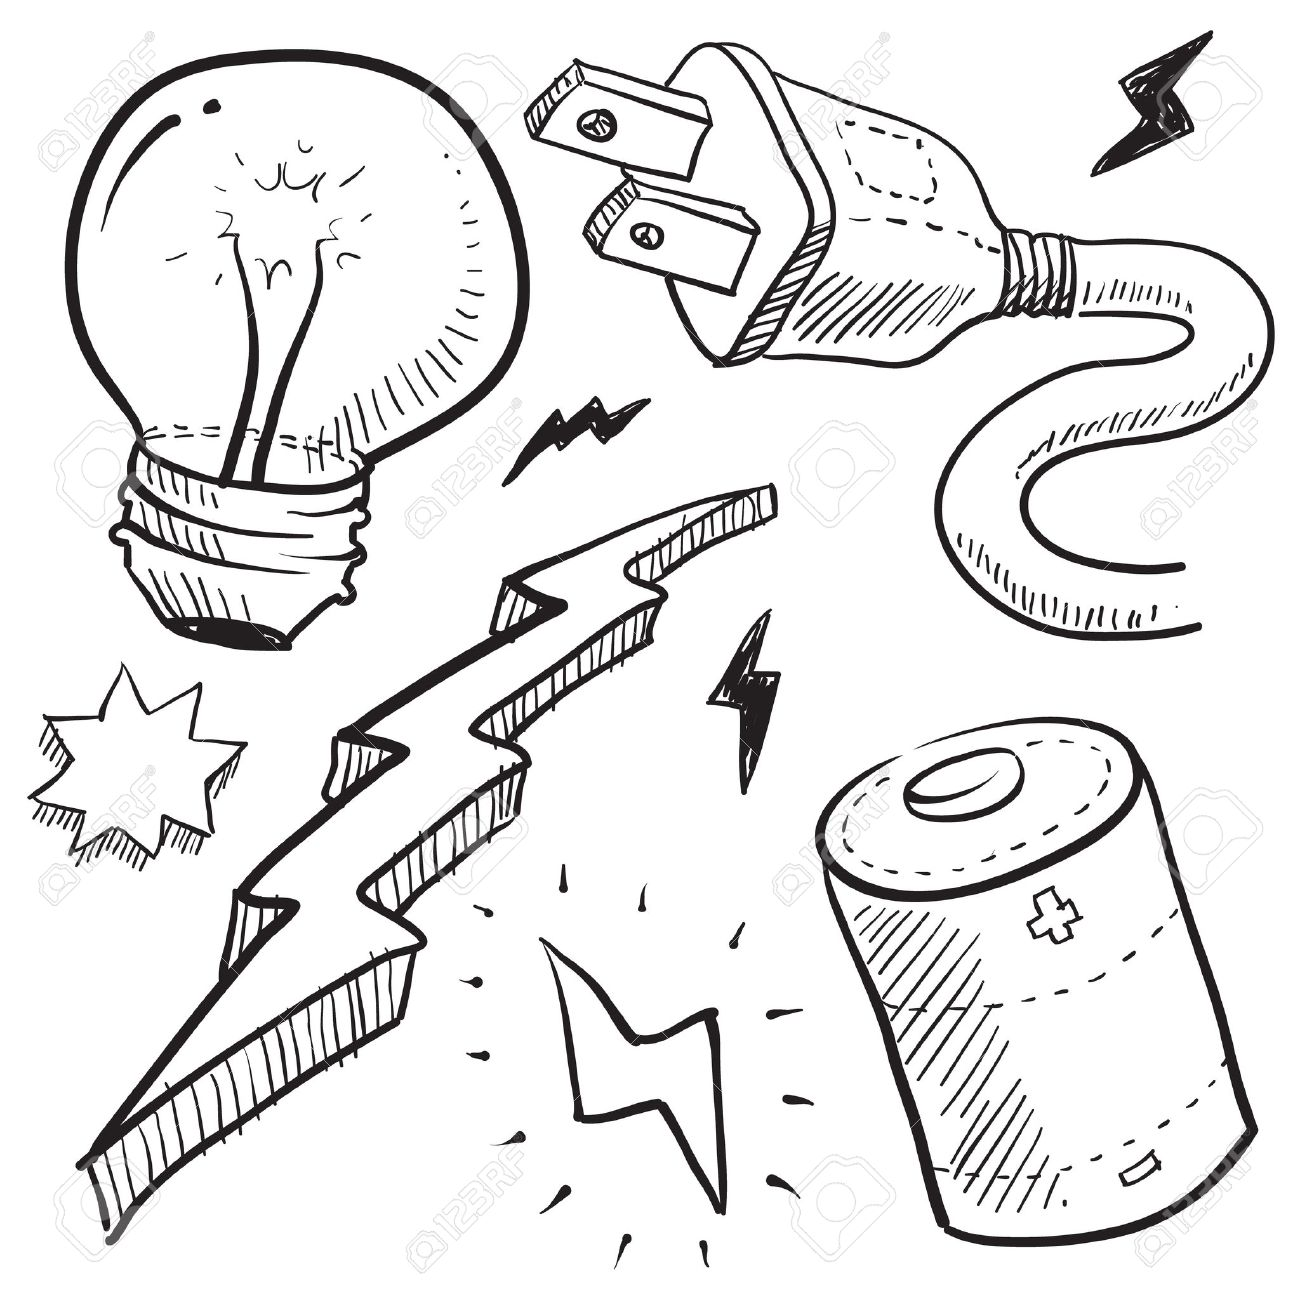 1300x1300 Doodle Style Electricity Or Power Vector Illustration With Cord